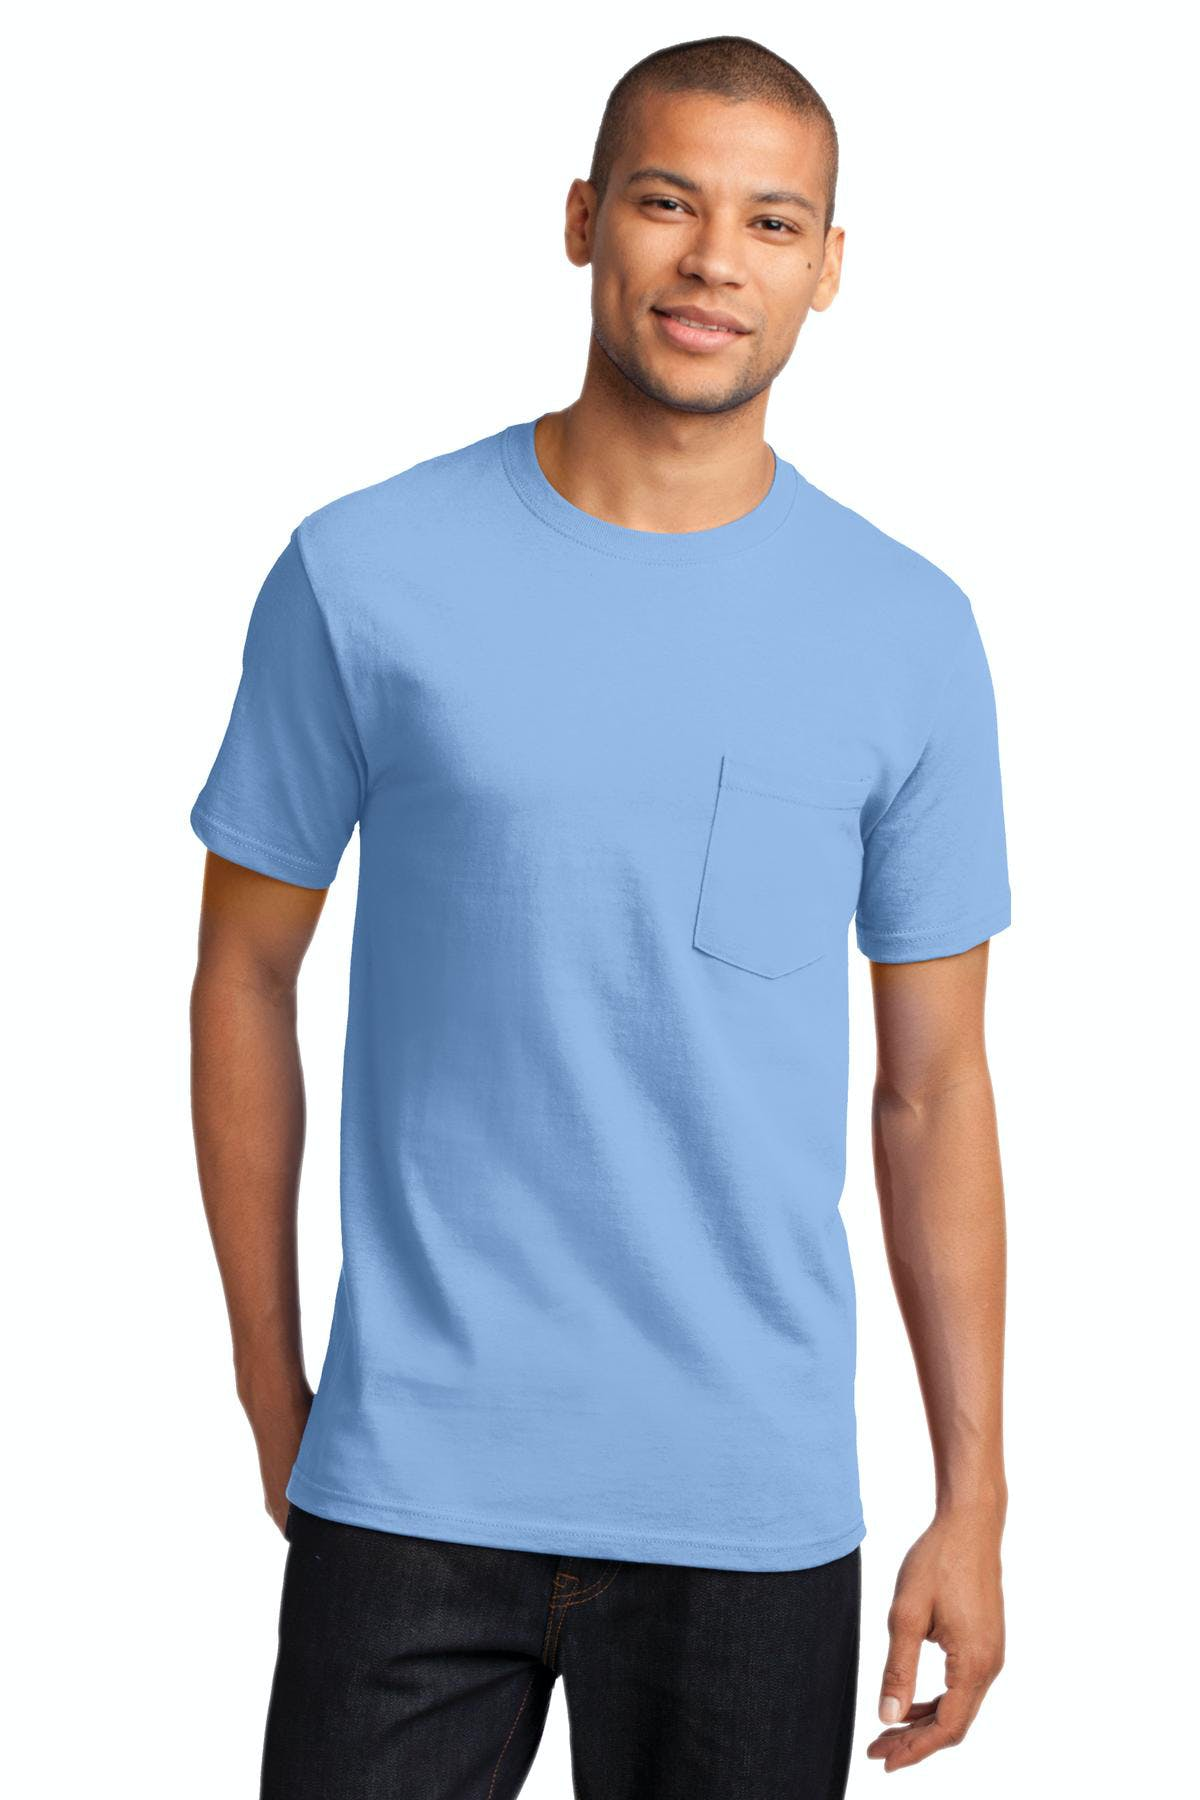 Port & Company® - Essential Pocket Tee - sold by PRINT CITY GRAPHICS, INC